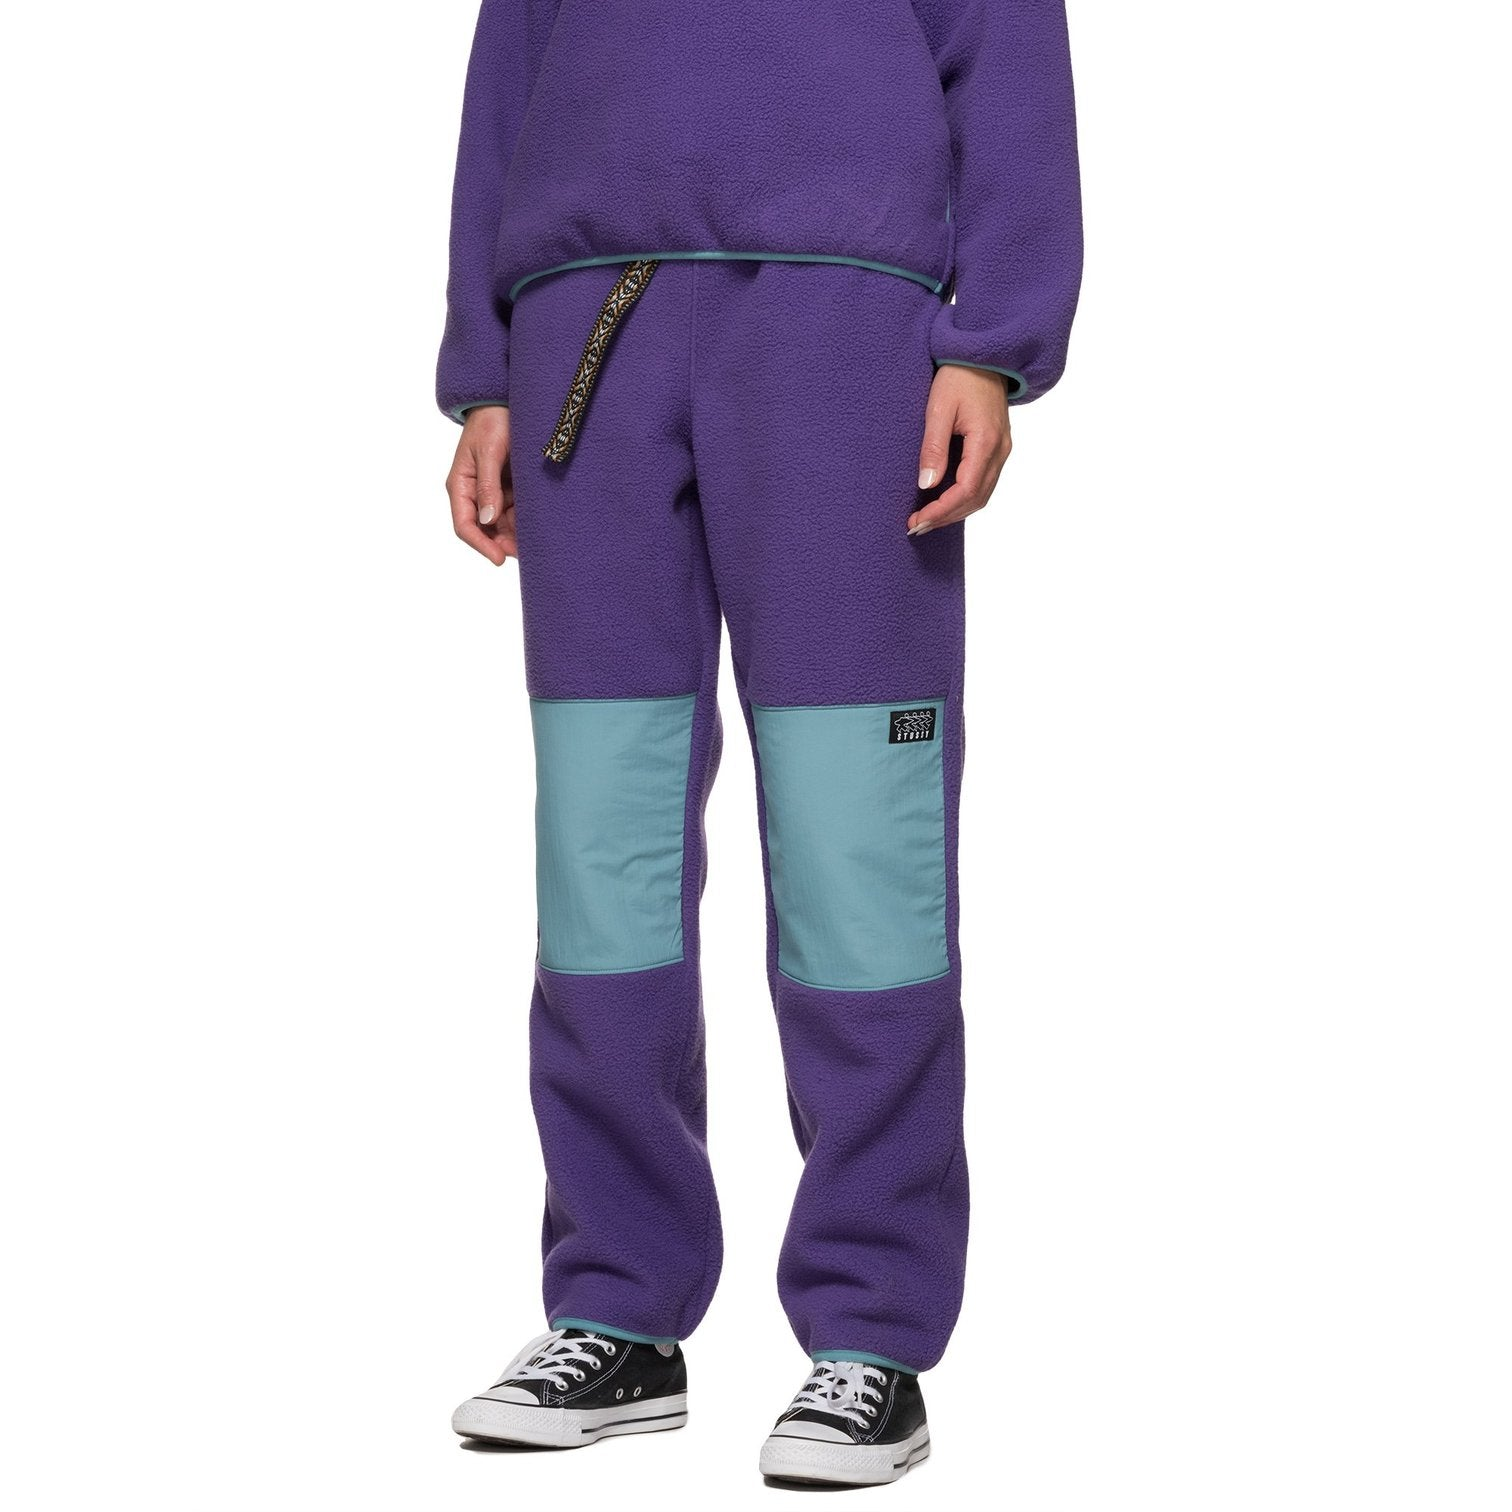 STUSSY W'S PANTS SUMMIT POLAR FLEECE PANT - PURPLE OR BLACK